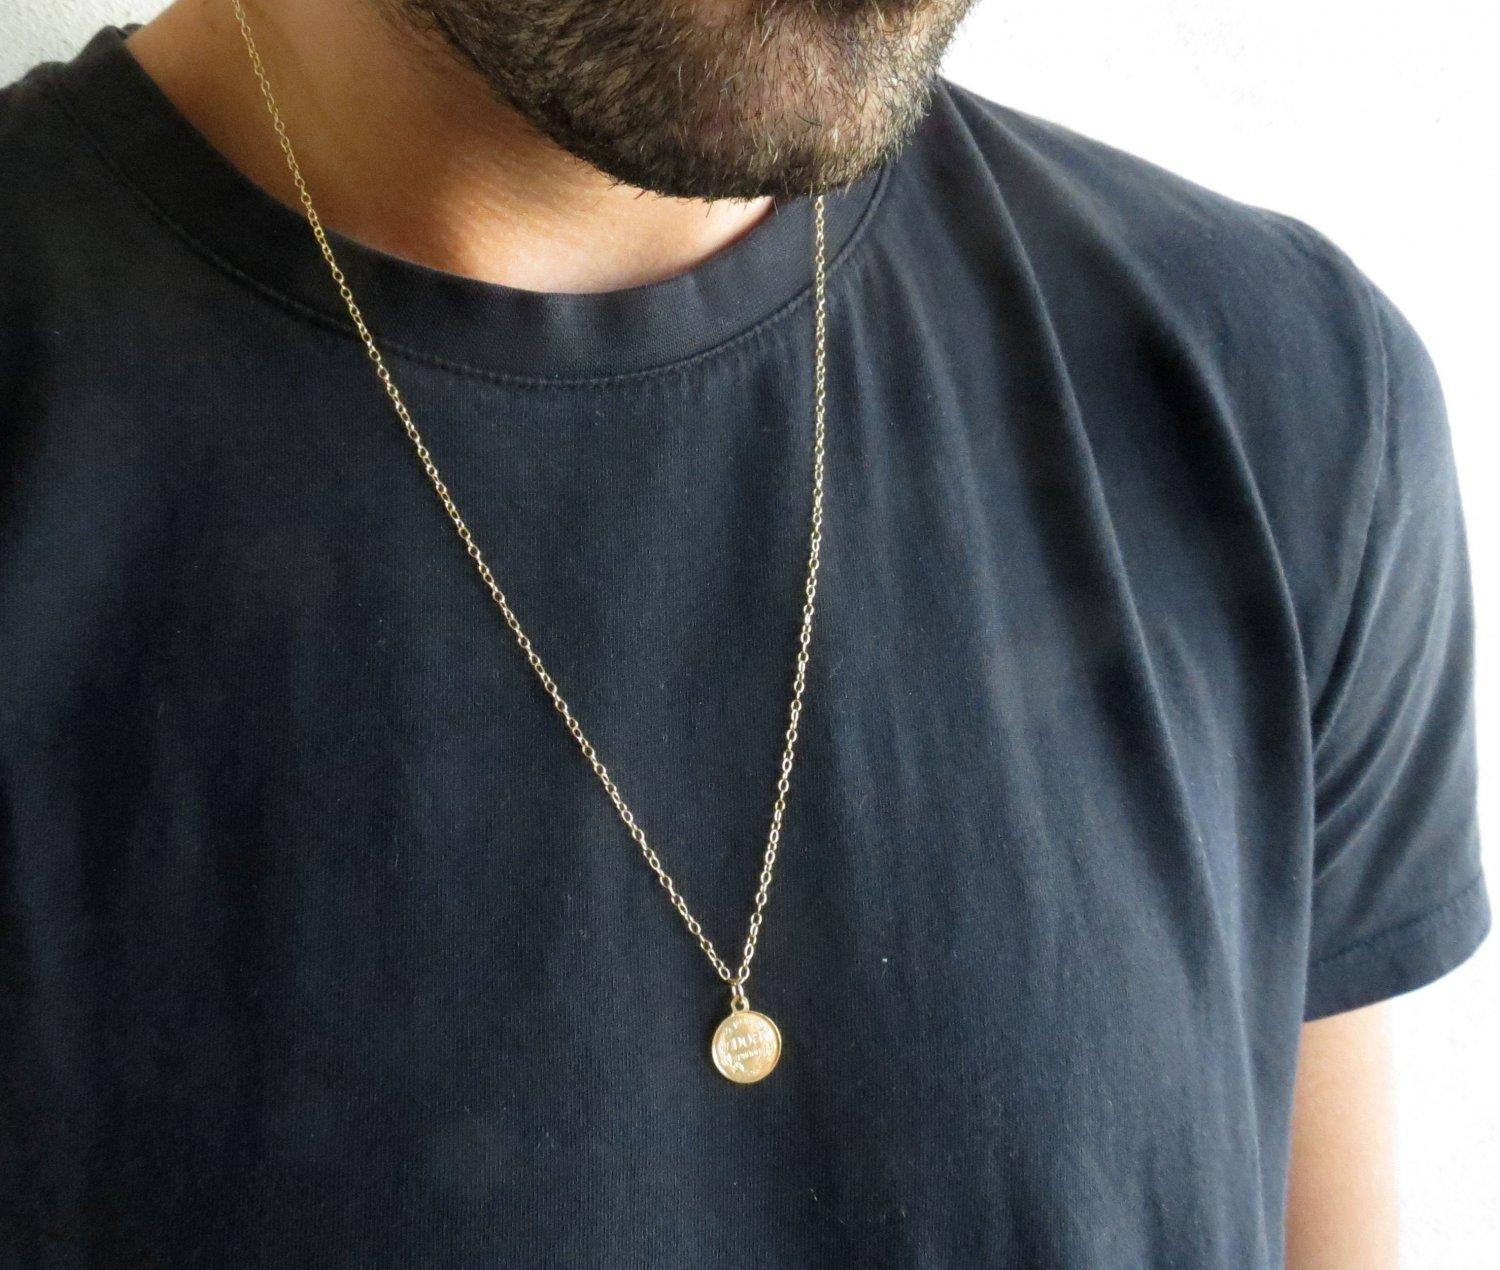 s necklace s coin necklace s gold necklace